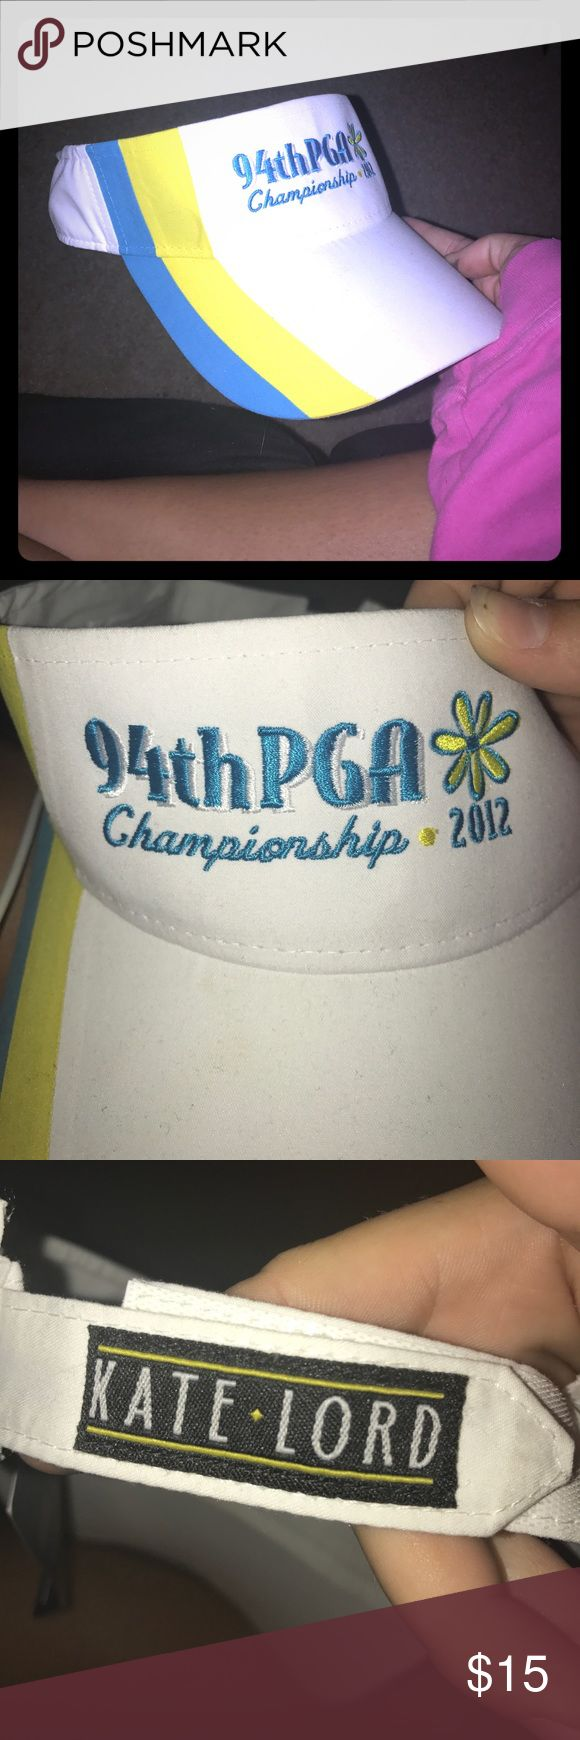 94th PGA championship white ladies visor NWT White ladies visor with yellow and blue details. 94th PGA Championship (2012). Velcro back and from the official PGA shop (see tag). Great collectible or gift for a golf lover! PGA Accessories Hats